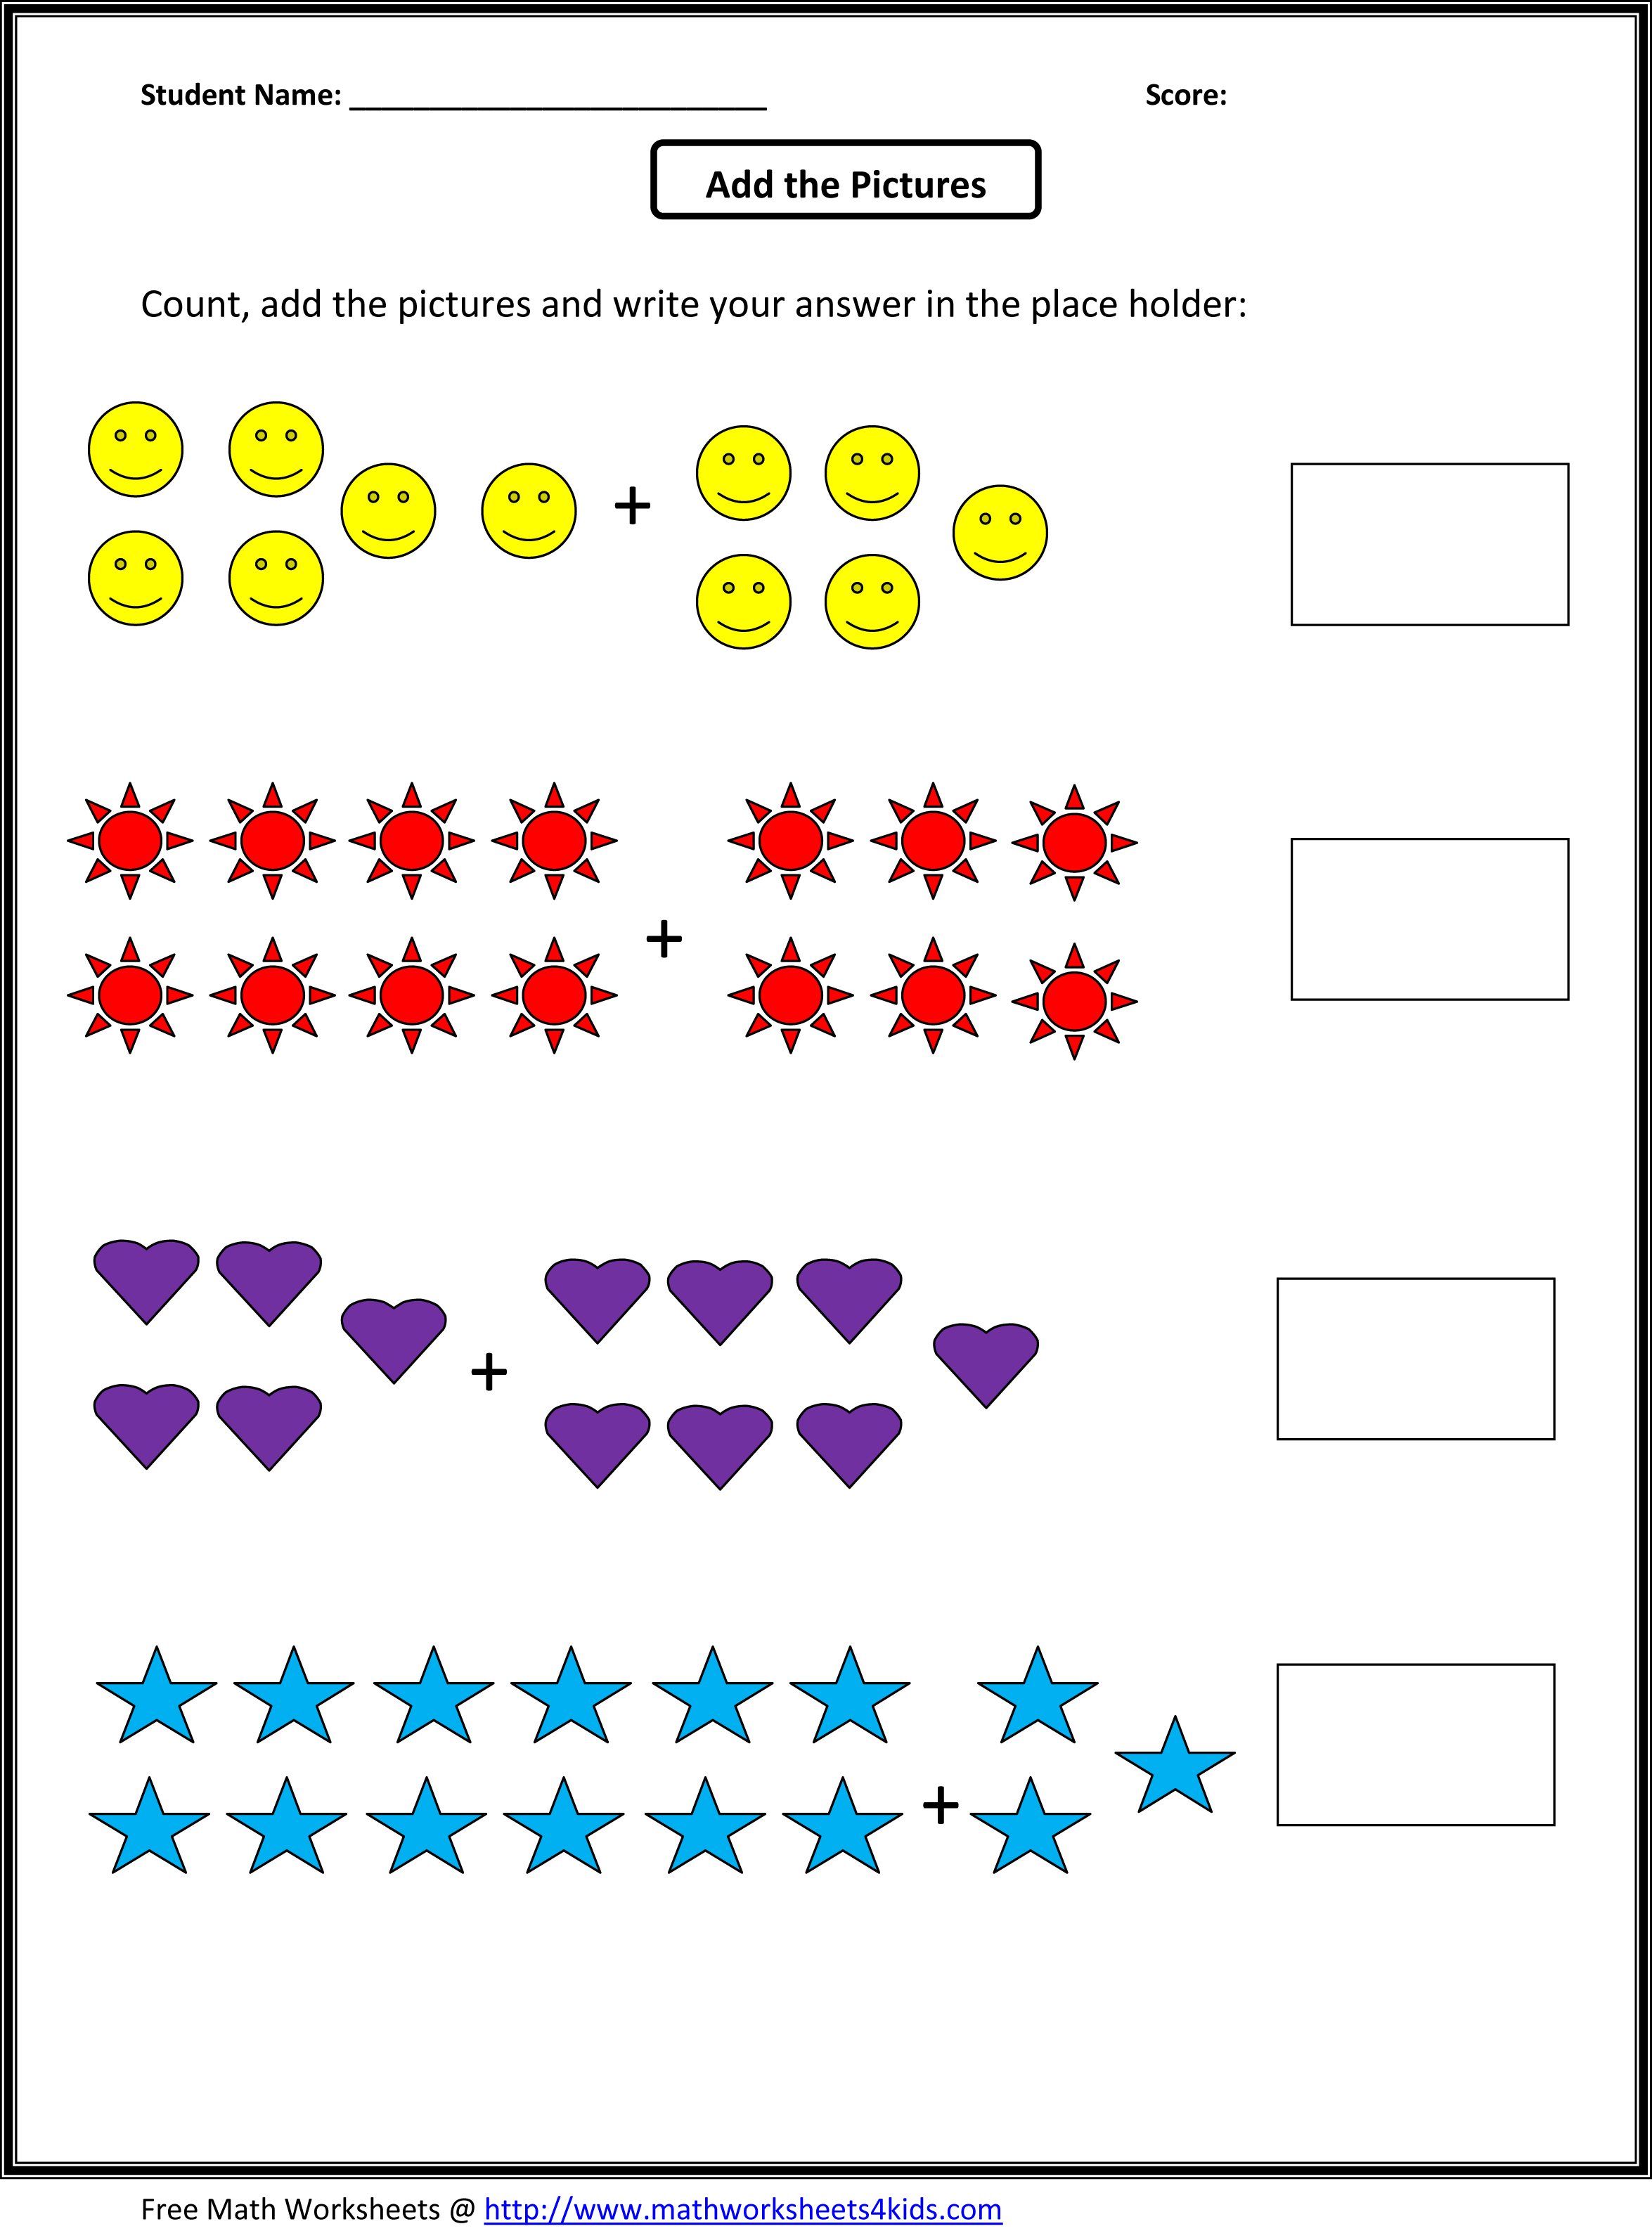 Weirdmailus  Splendid Grade  Maths Worksheet  Reocurent With Excellent Math Worksheets For St Grade Free  Reocurent With Agreeable Context Clues Worksheet Grade  Also Worksheets On Characterization In Addition Free Physics Worksheets And English Grammar Worksheets For Grade  As Well As Complex And Compound Sentences Worksheets Additionally Dogzilla Worksheets From Reocurentcom With Weirdmailus  Excellent Grade  Maths Worksheet  Reocurent With Agreeable Math Worksheets For St Grade Free  Reocurent And Splendid Context Clues Worksheet Grade  Also Worksheets On Characterization In Addition Free Physics Worksheets From Reocurentcom